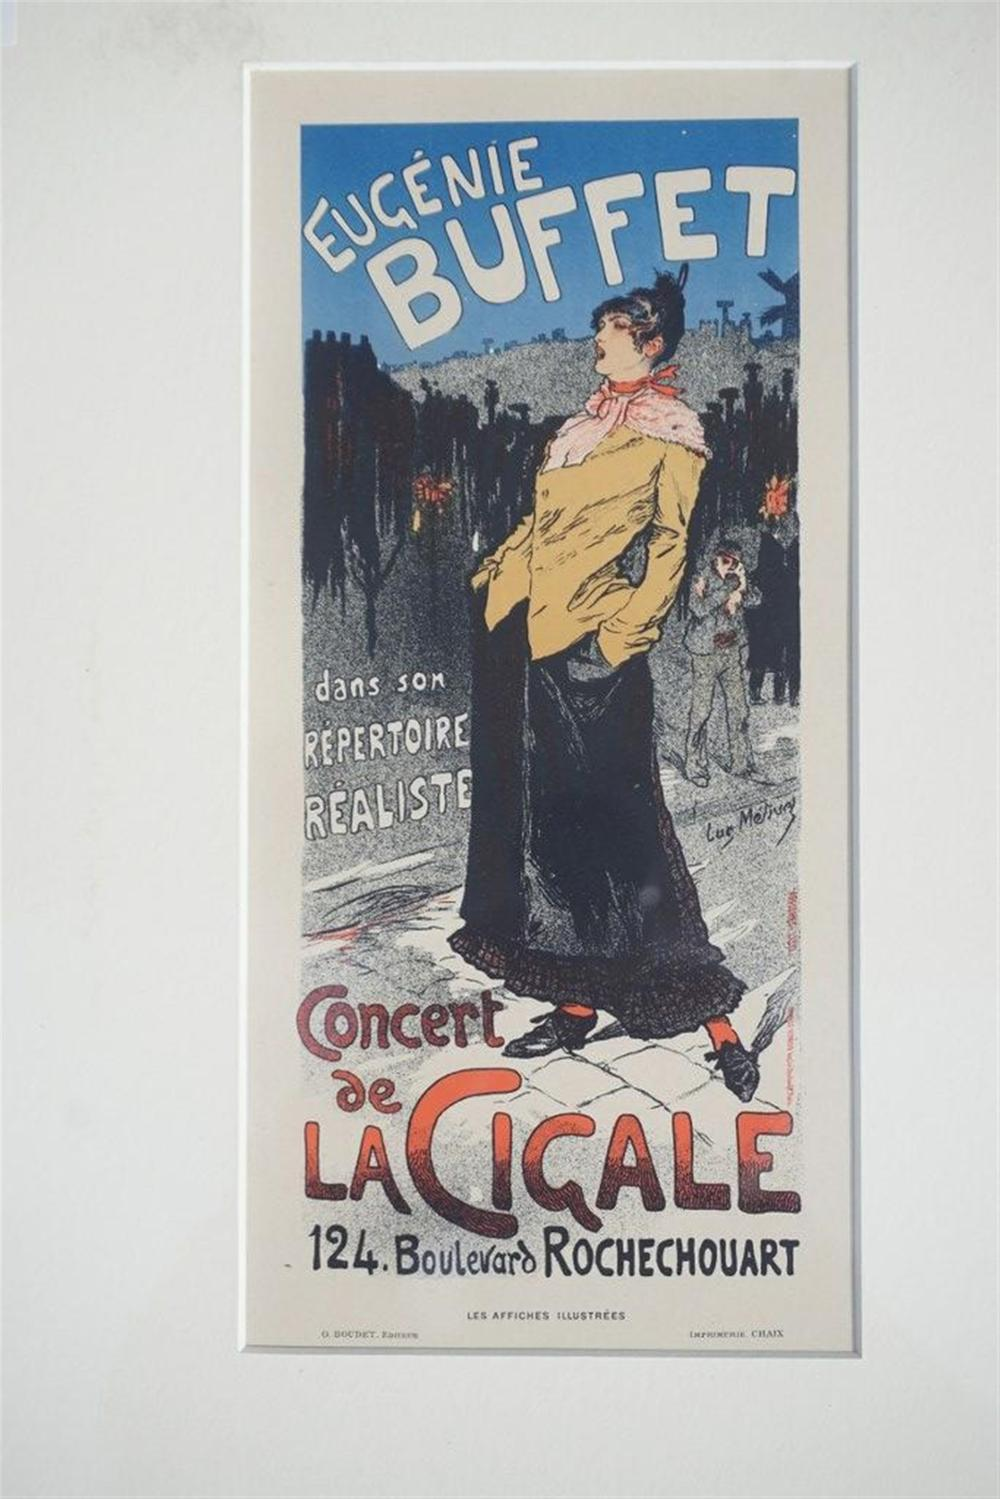 "1896 METIVET FRENCH STONE LITHO POSTER, EUGENIE BUFFET, SHEET SIZE 8 3/4"" X 12 1/4"", EXCELLENT CONDITION, SHRINK WRAPPED AND MATTED, FROM RETIRED DEALER."